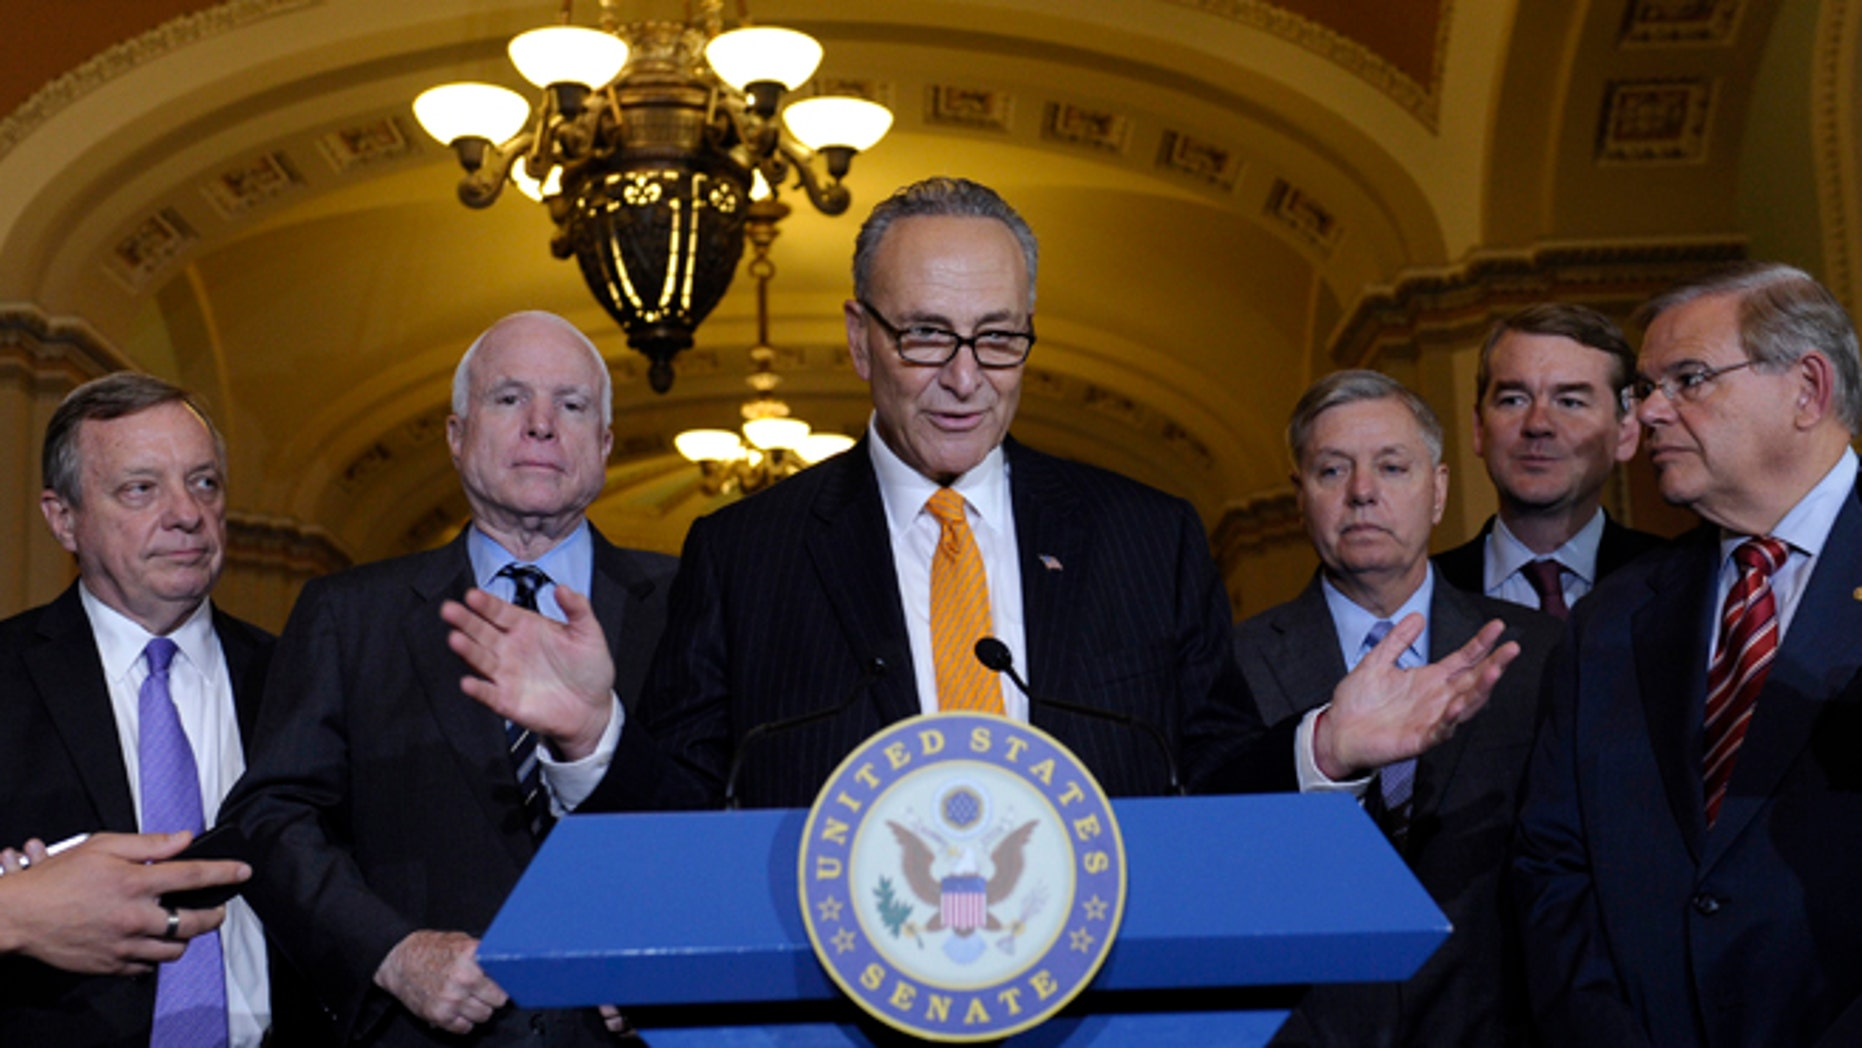 Sen. Charles Schumer, D-N.Y., center, speaks following a vote in the Senate on immigration reform on Capitol Hill in Washington, Thursday, June 27, 2013.  (AP Photo/Susan Walsh)